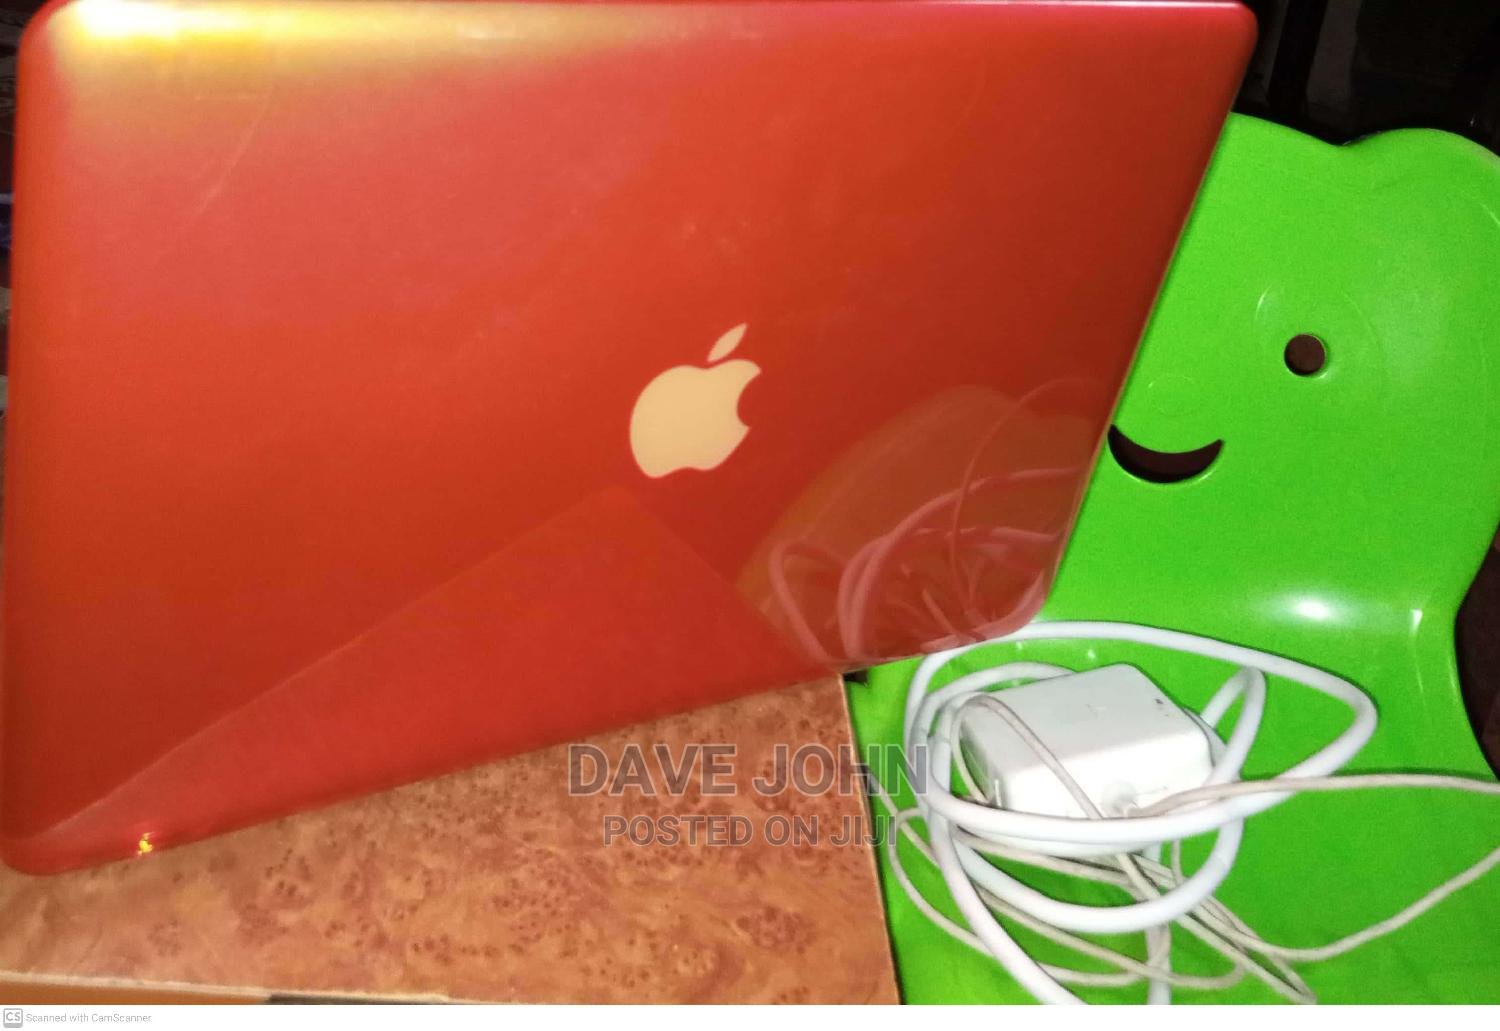 Laptop Apple MacBook 2010 6GB Intel Core I5 HDD 500GB   Laptops & Computers for sale in Central Business Dis, Abuja (FCT) State, Nigeria